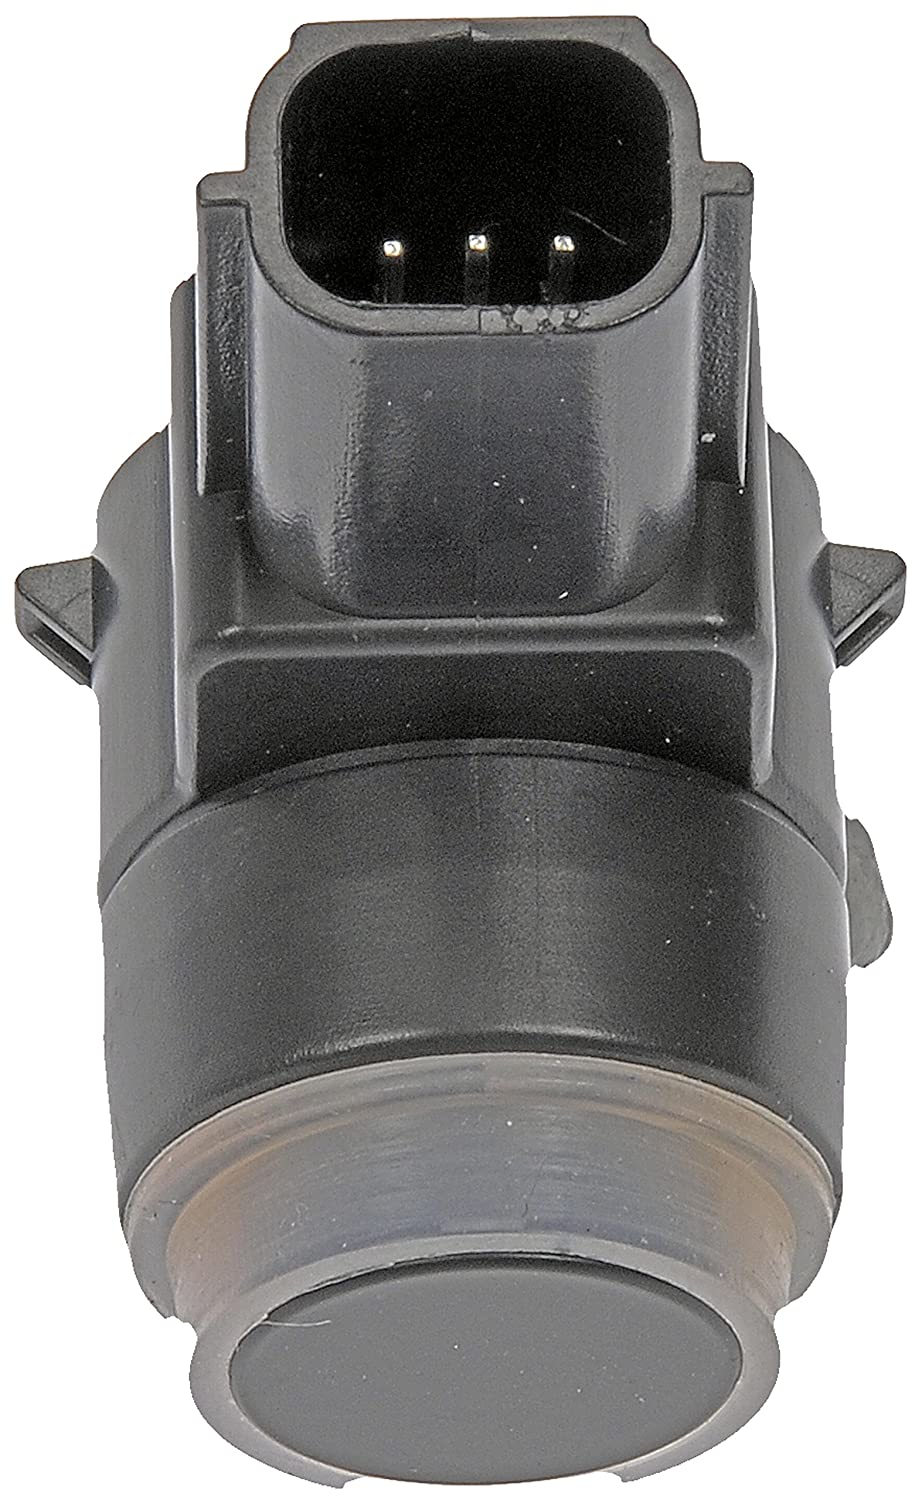 Dorman 684-017 Parking Assist Sensor